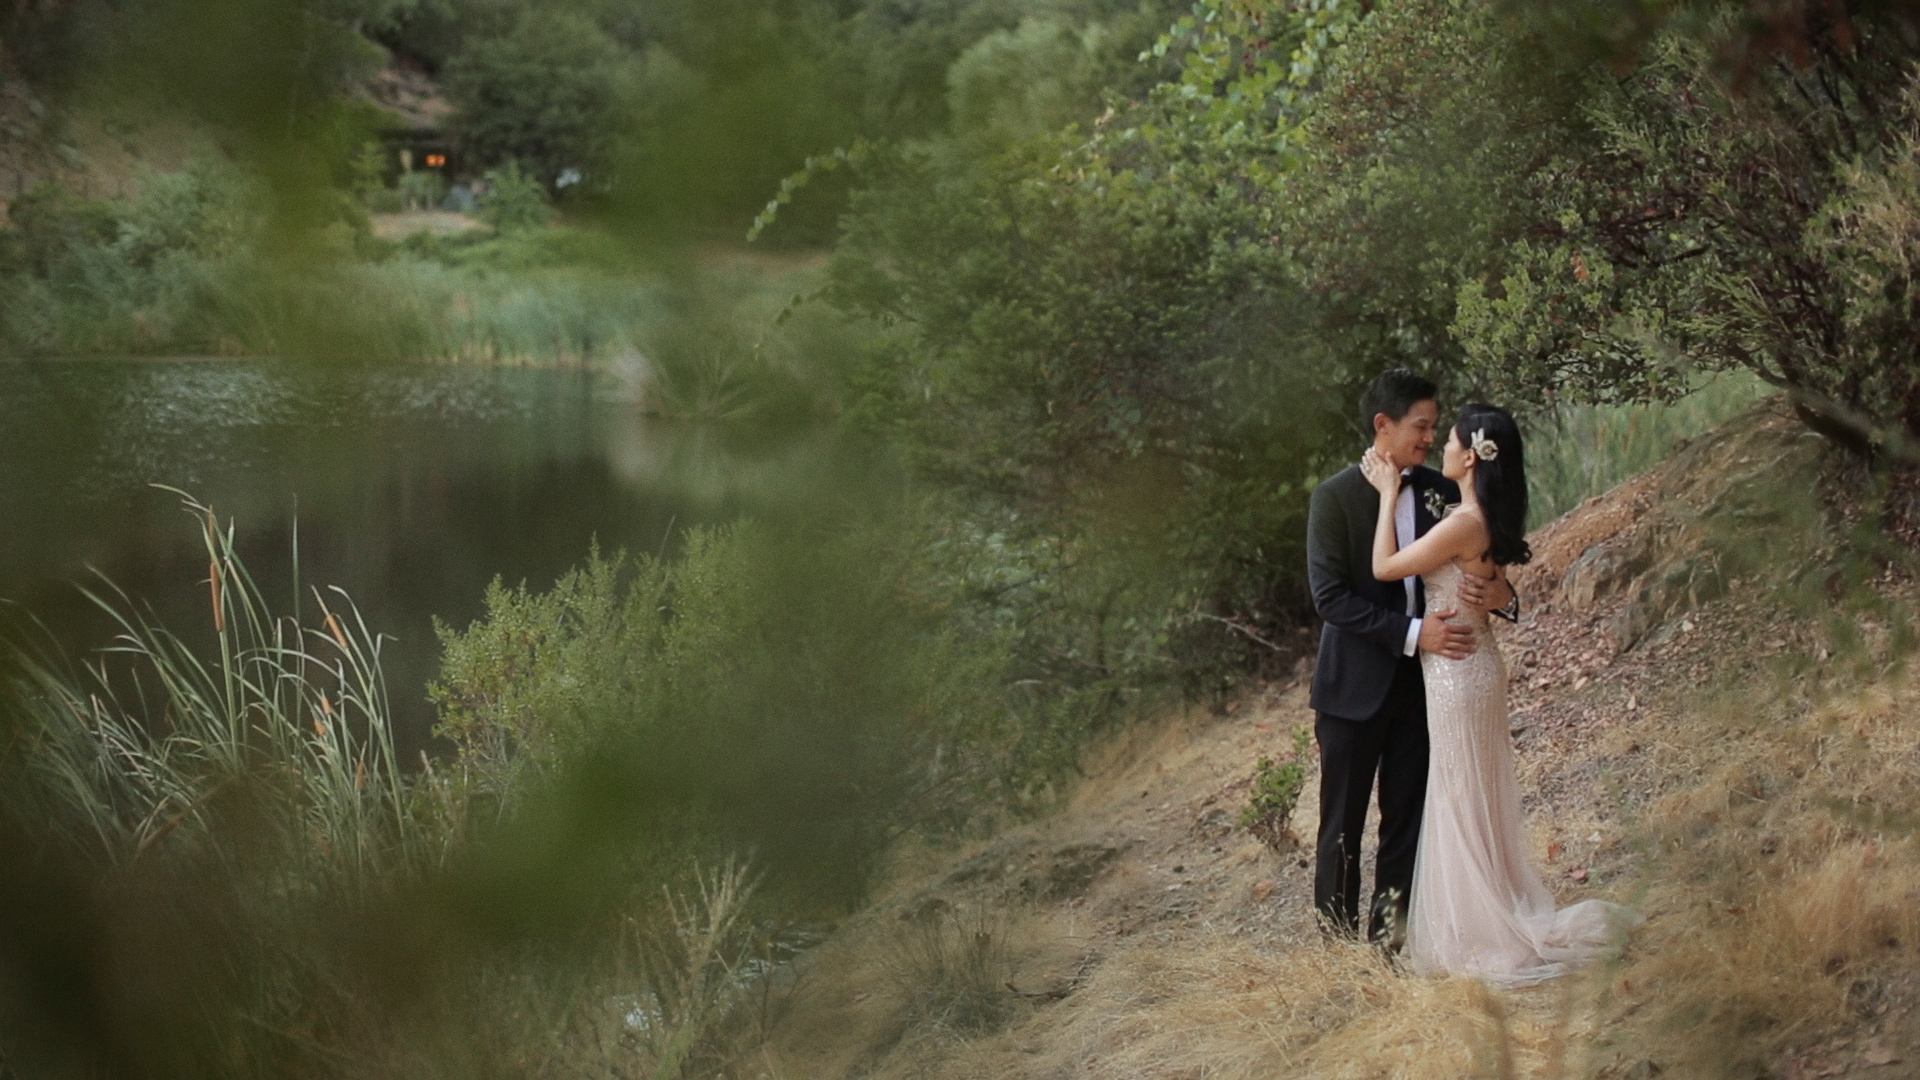 Soo + Michael | Calistoga, California | Calistoga Ranch